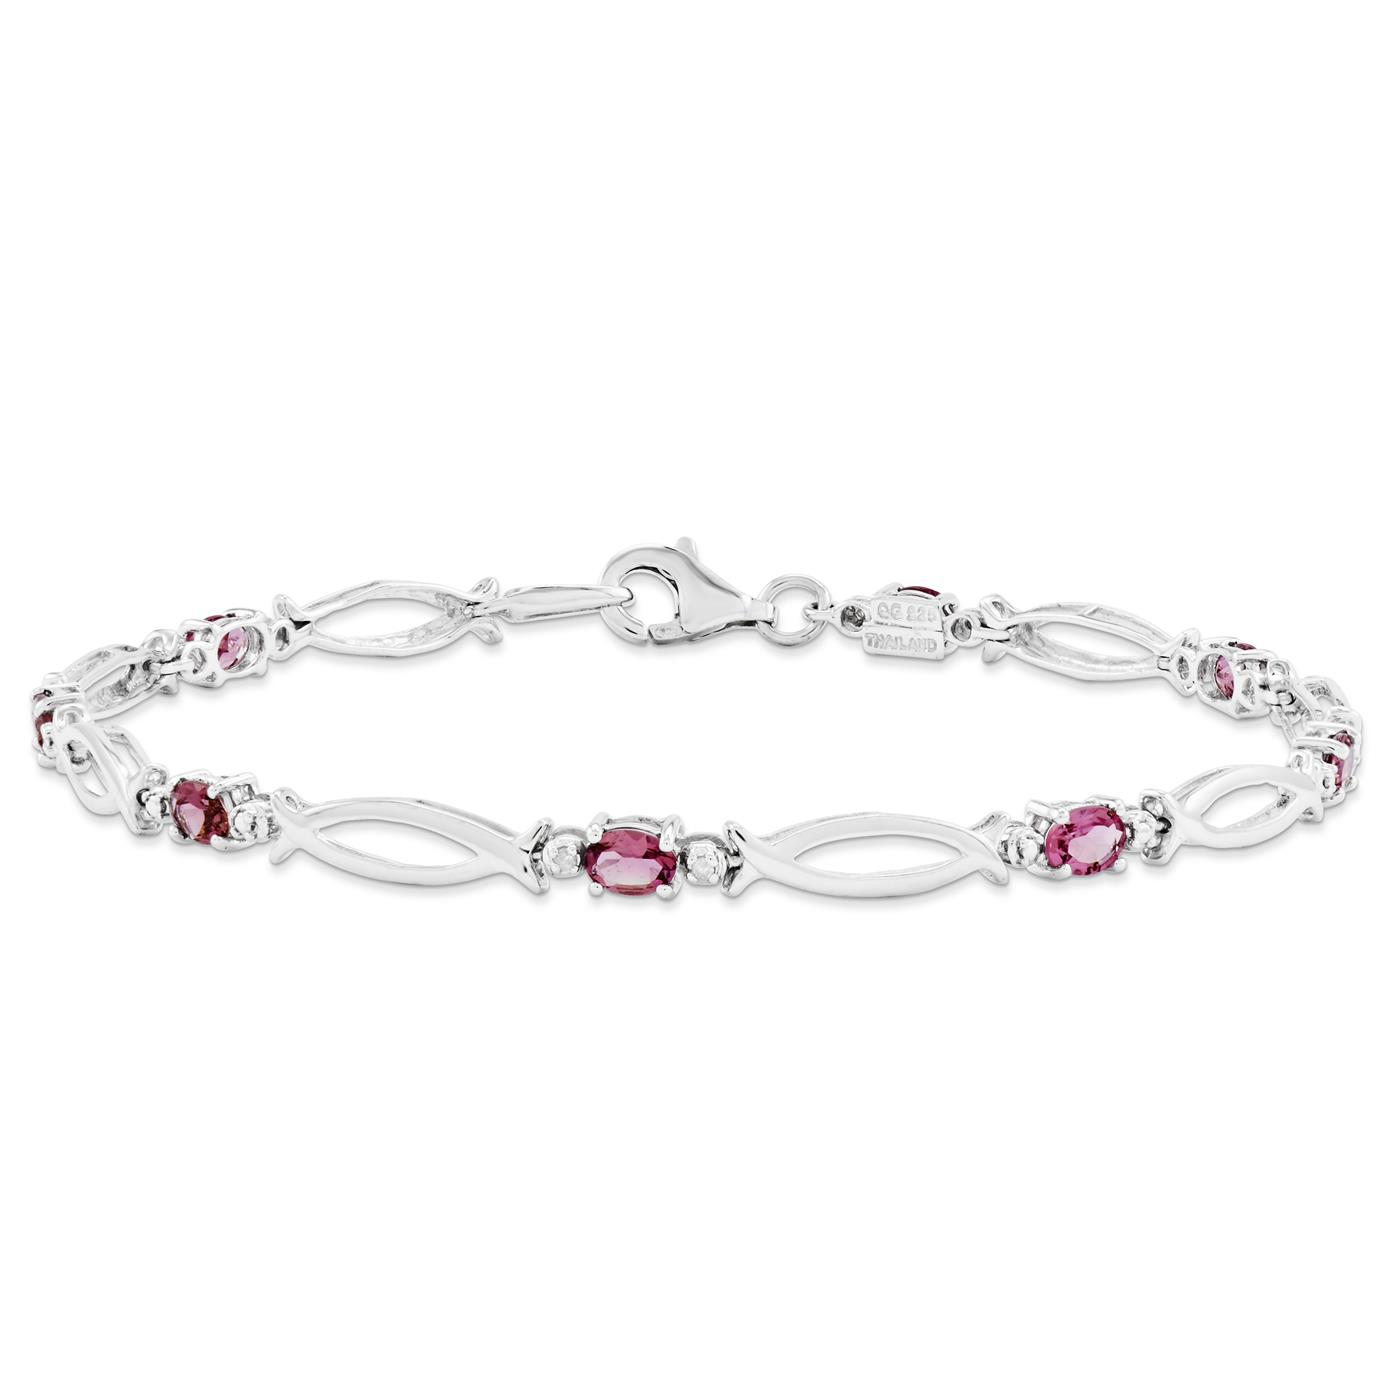 "925 Sterling Silver 3mm Pink Tourmaline and Diamond Gemstone Bracelet 7"" by Fusion Collections"